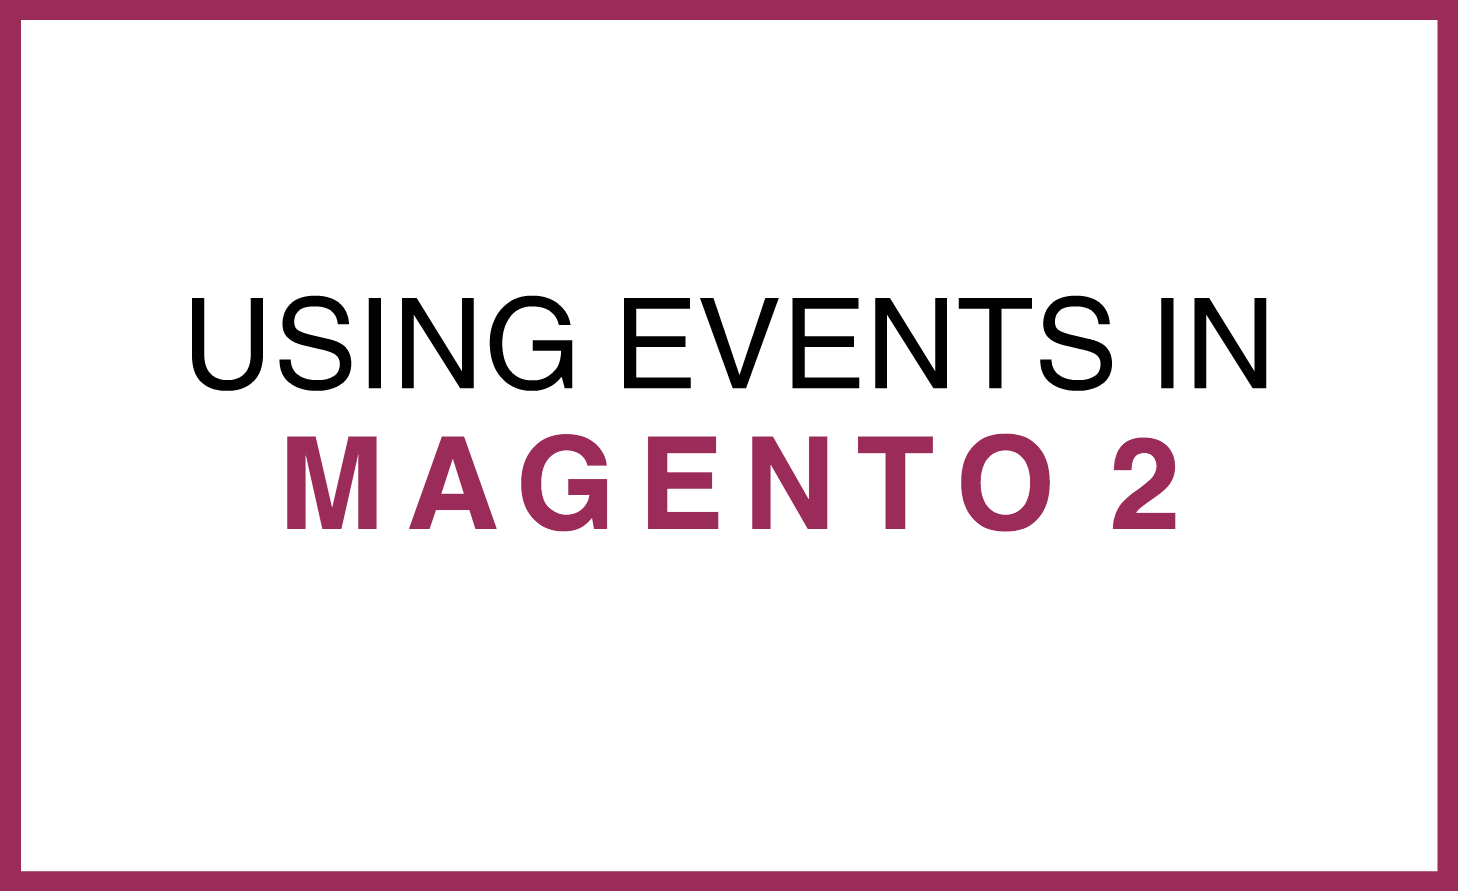 magento_2_events.png